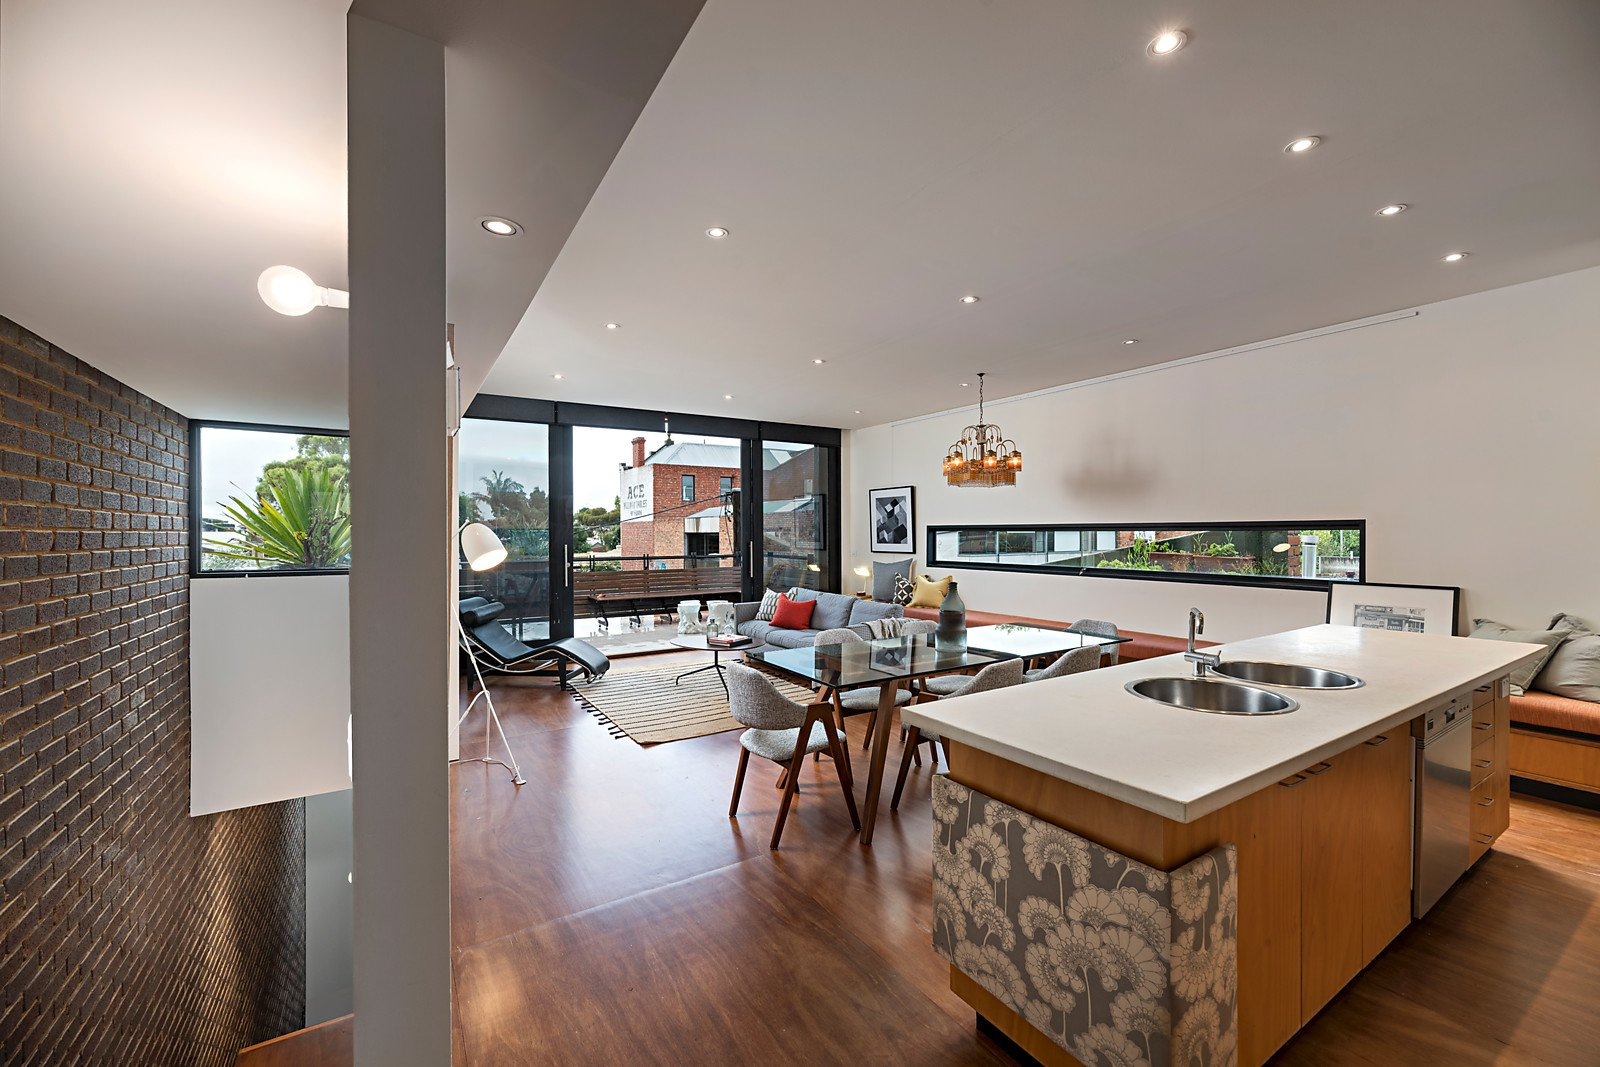 46 Little Charles Street, Fitzroy, VIC, 3065 image 2